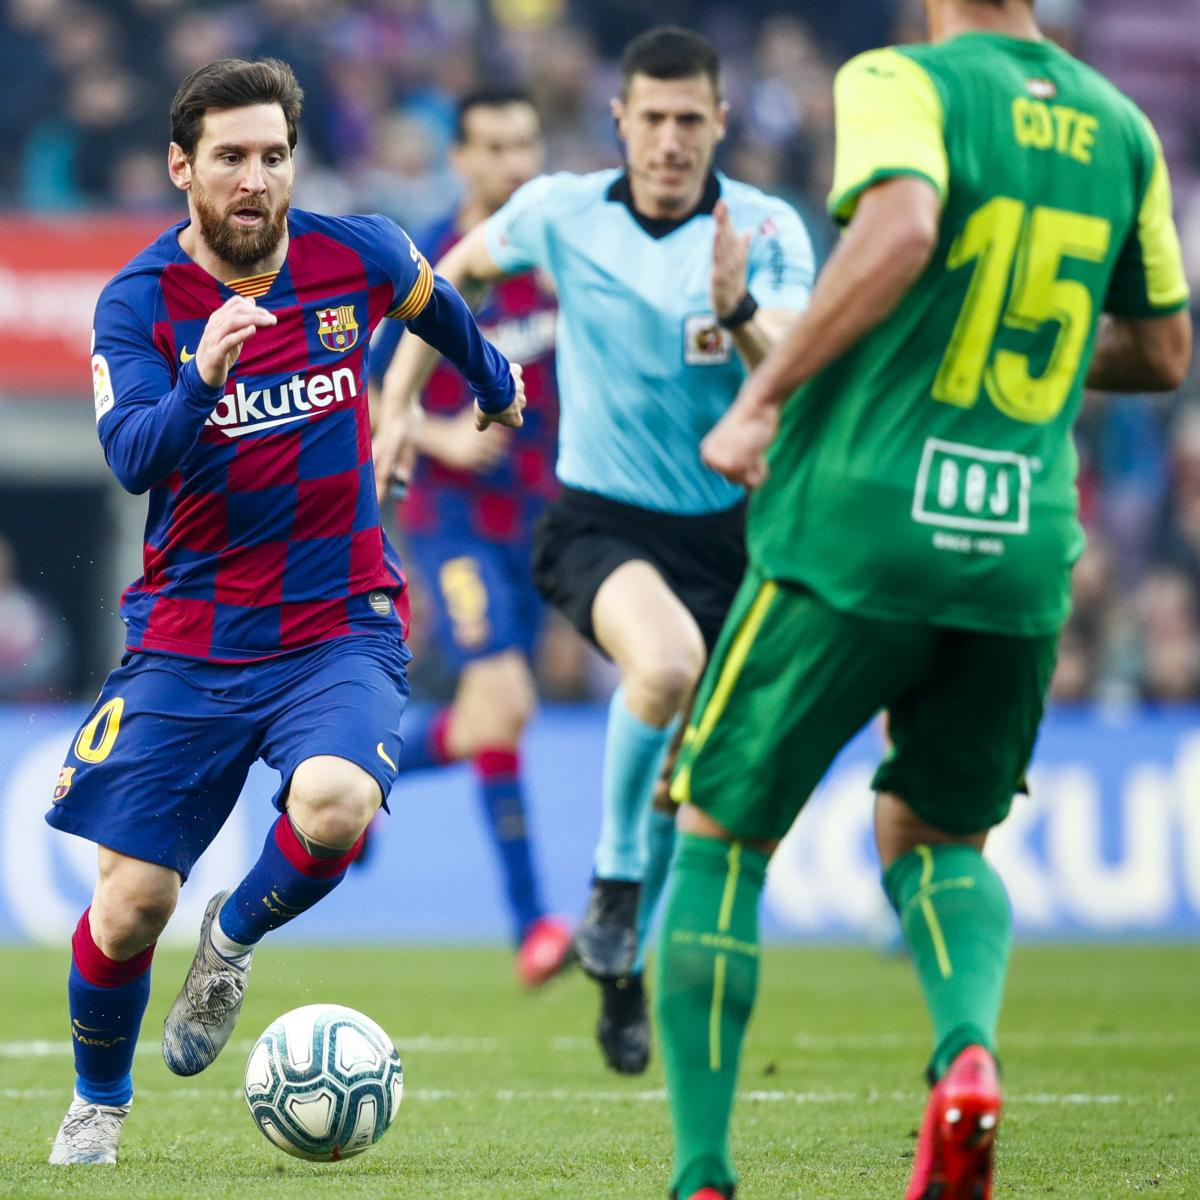 Lionel Messi, Koke, Nabil Fekir and La Liga Team of the Week After Matchday 25